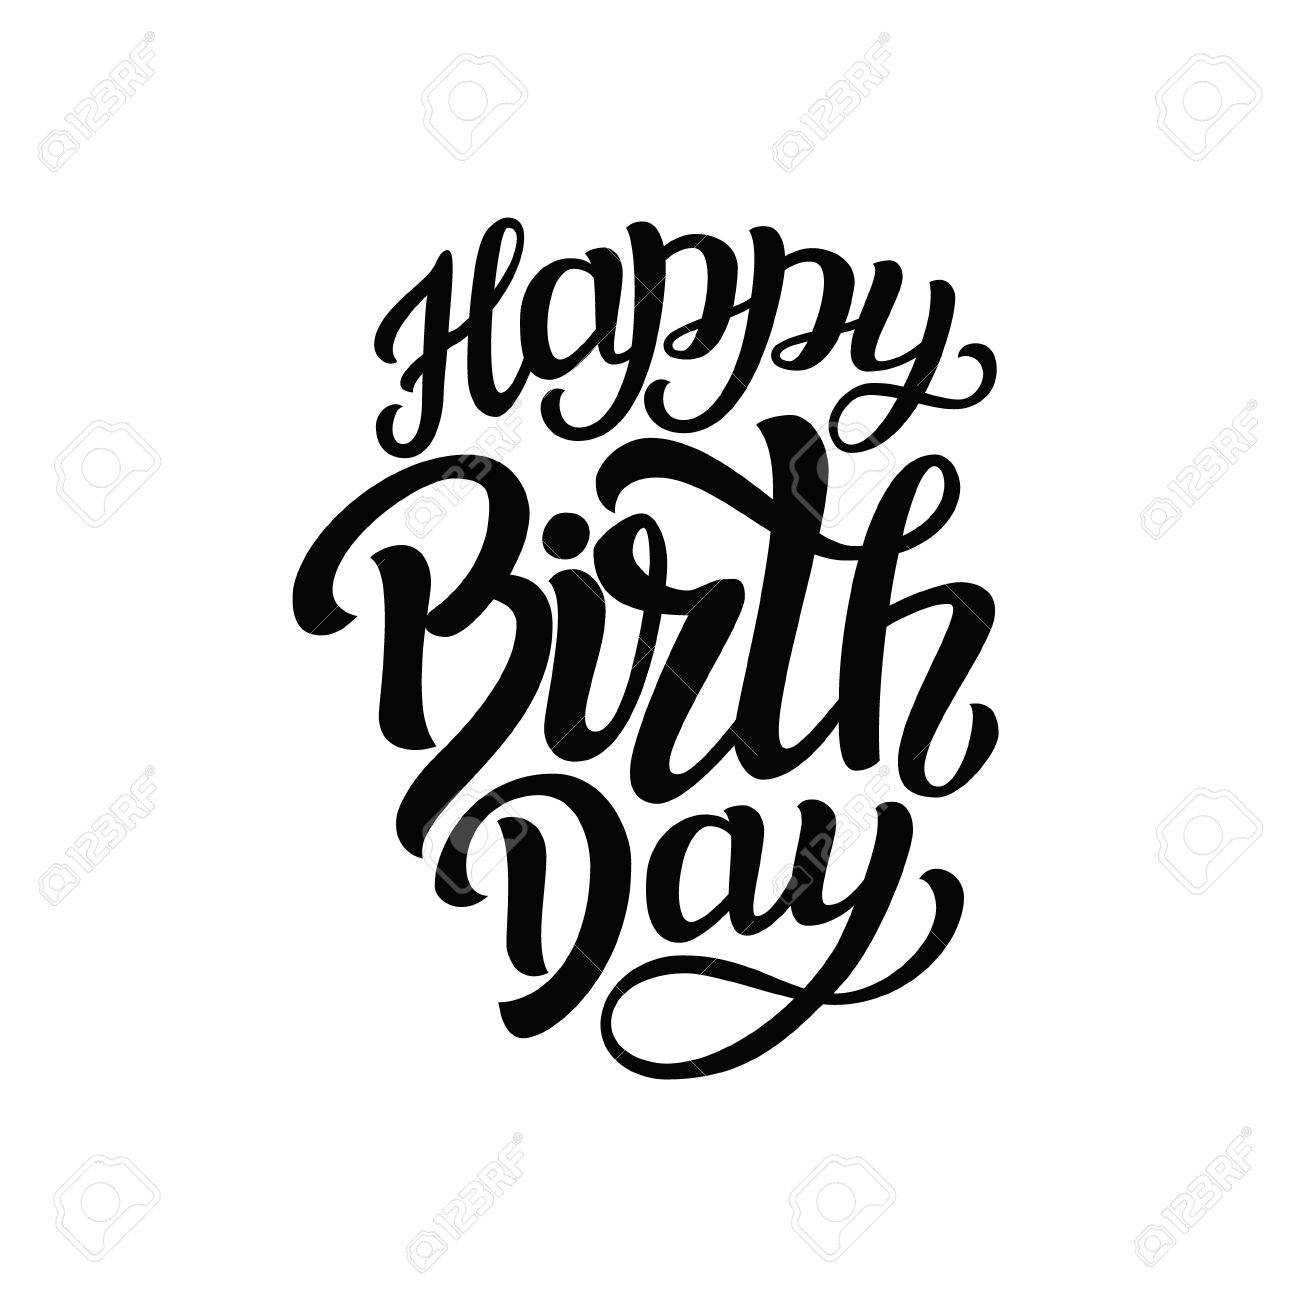 happy birthday to you hand lettering typography template isolated